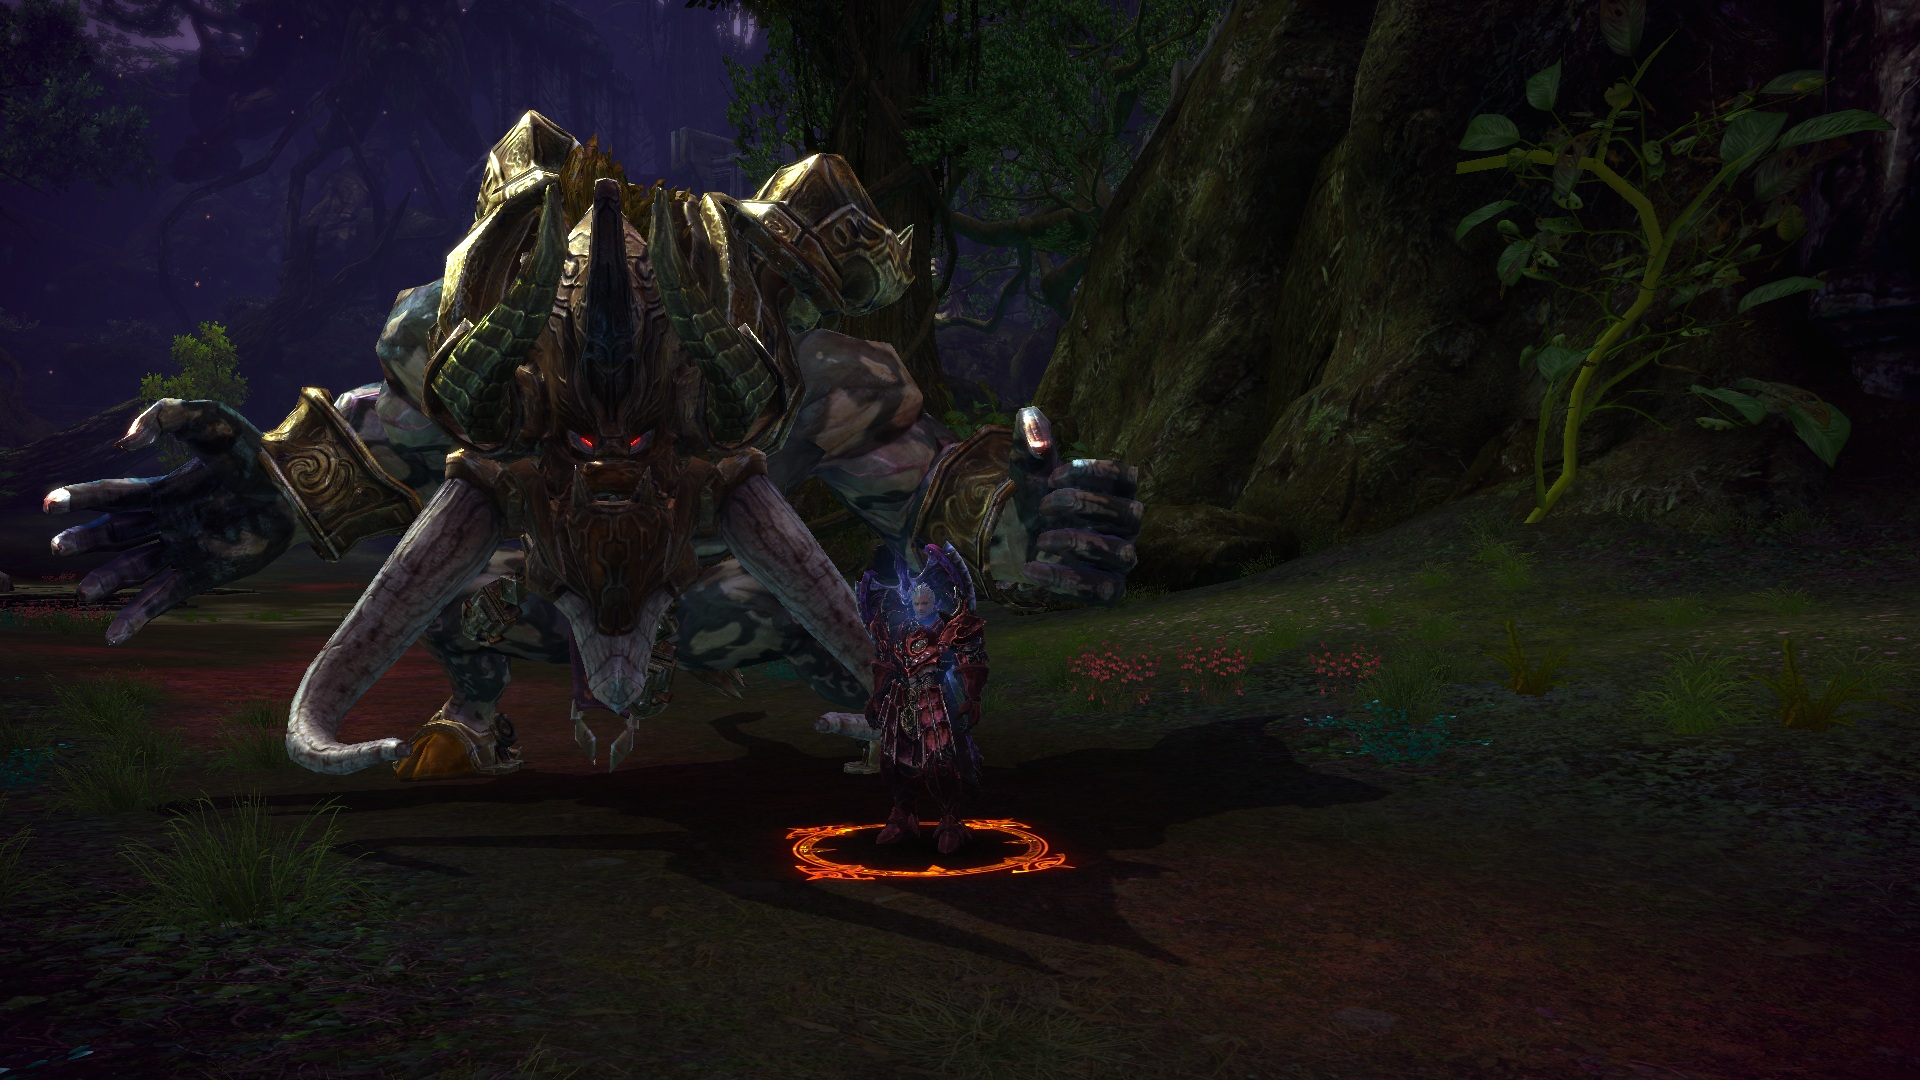 friskuni games fact wrong call completely game people work company publishing bozo fuck cares forumsterafans online official silly shit tera clown argue monster